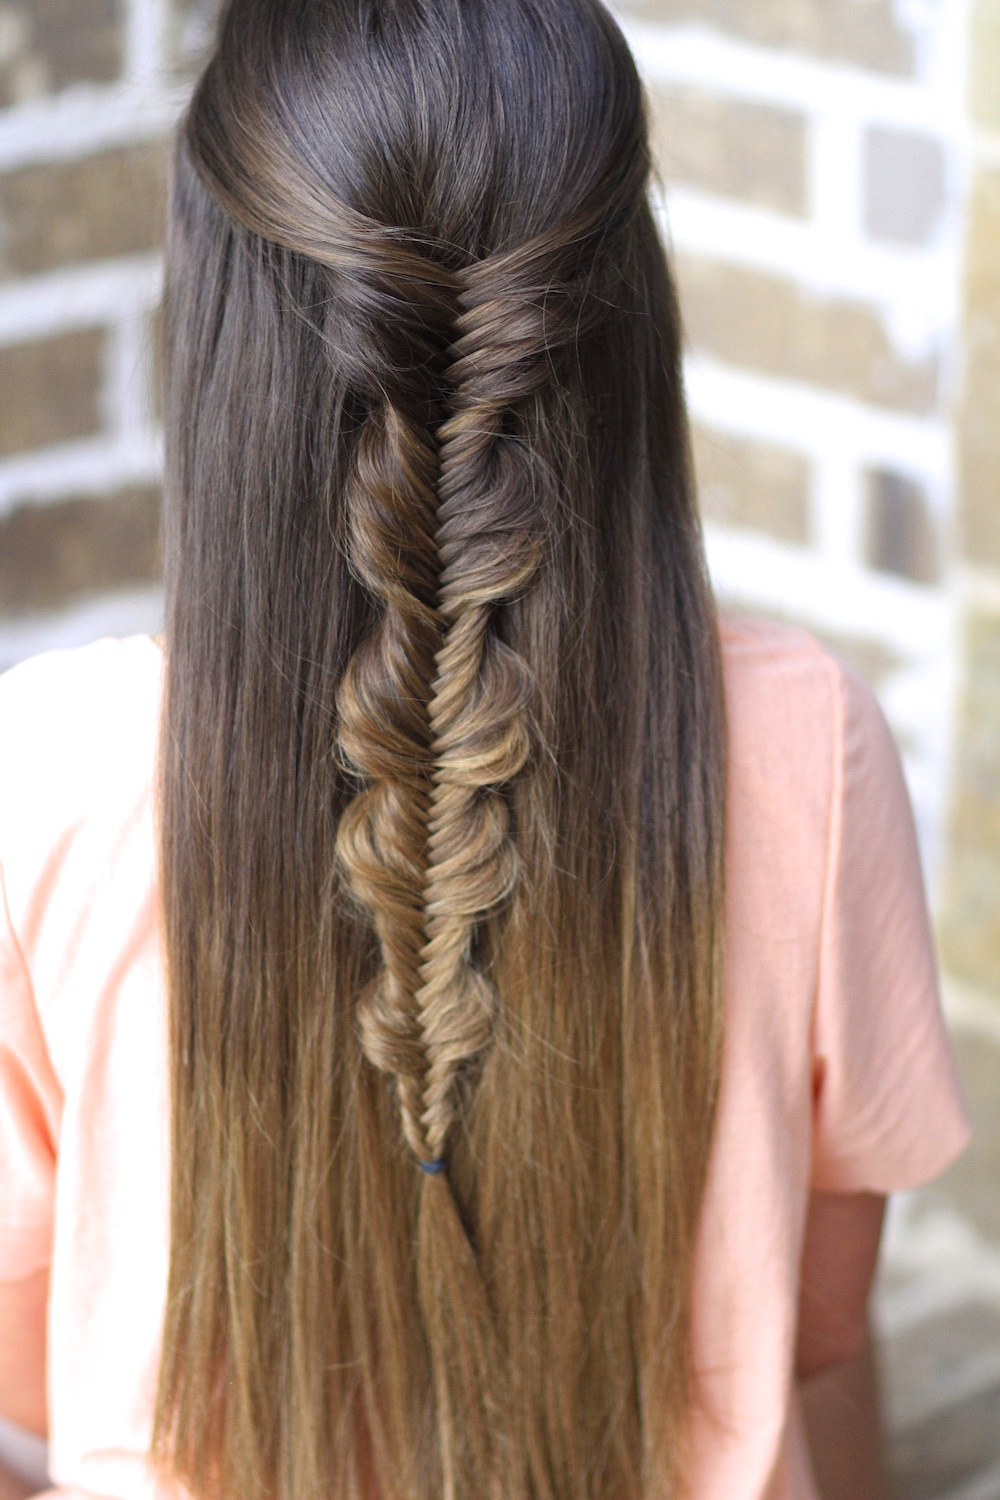 How To Fishtail Braid Super Easy Fishtail Braid Tutorial